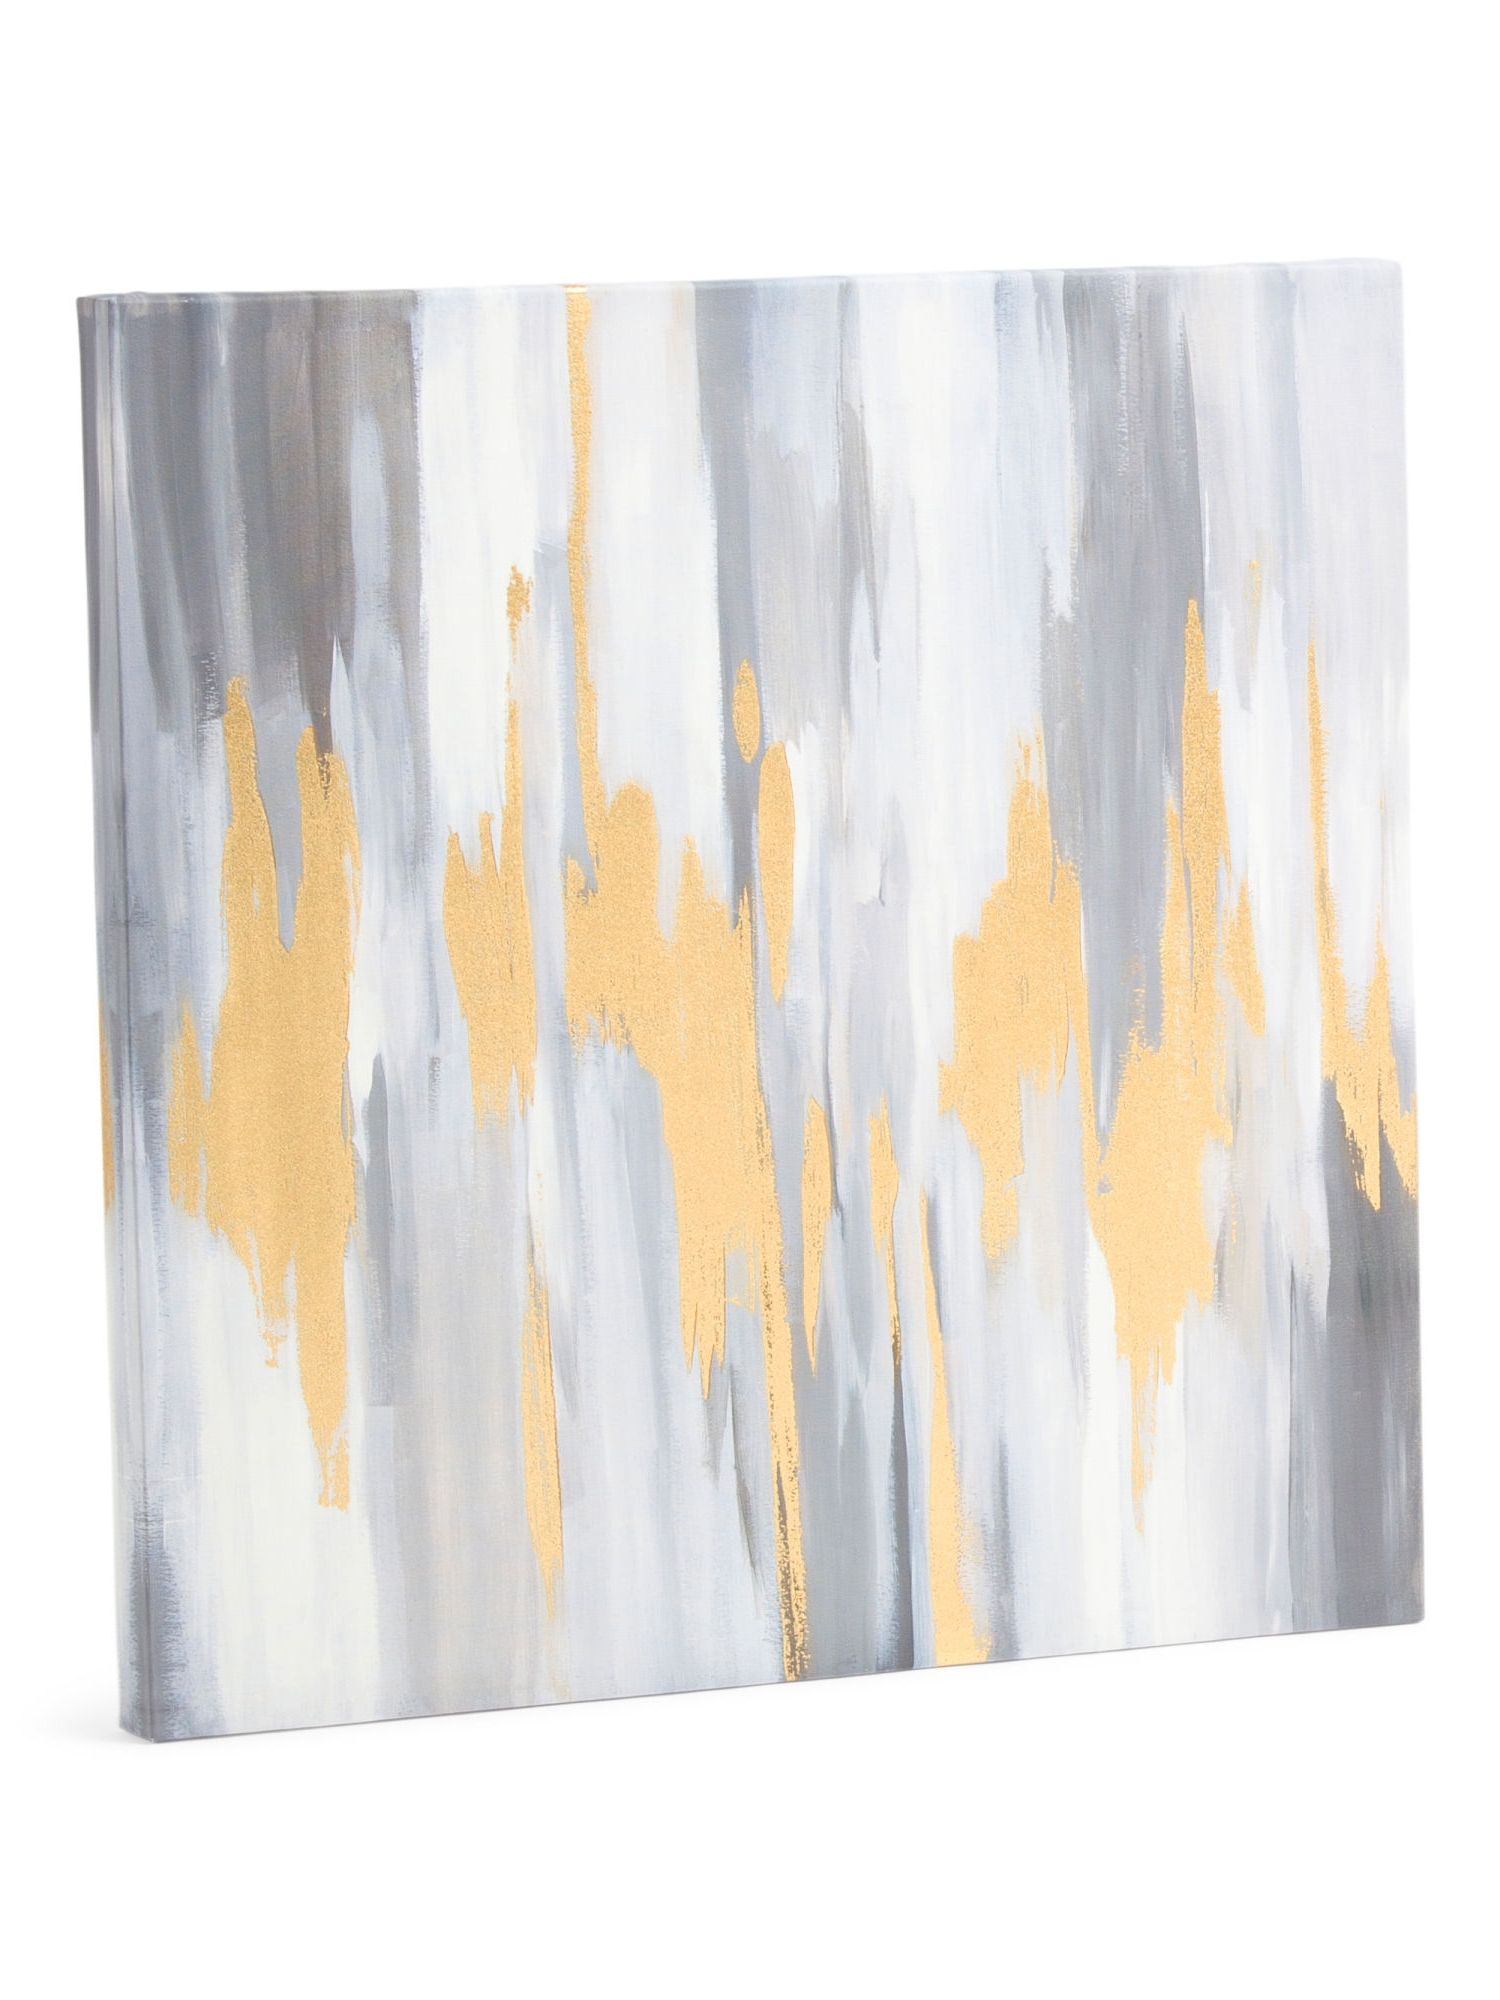 Tj Maxx Wall Art For Widely Used 24X24 Gray Abstract Wall Art With Gold Foil – Wall Decor – T.j. (Gallery 5 of 15)